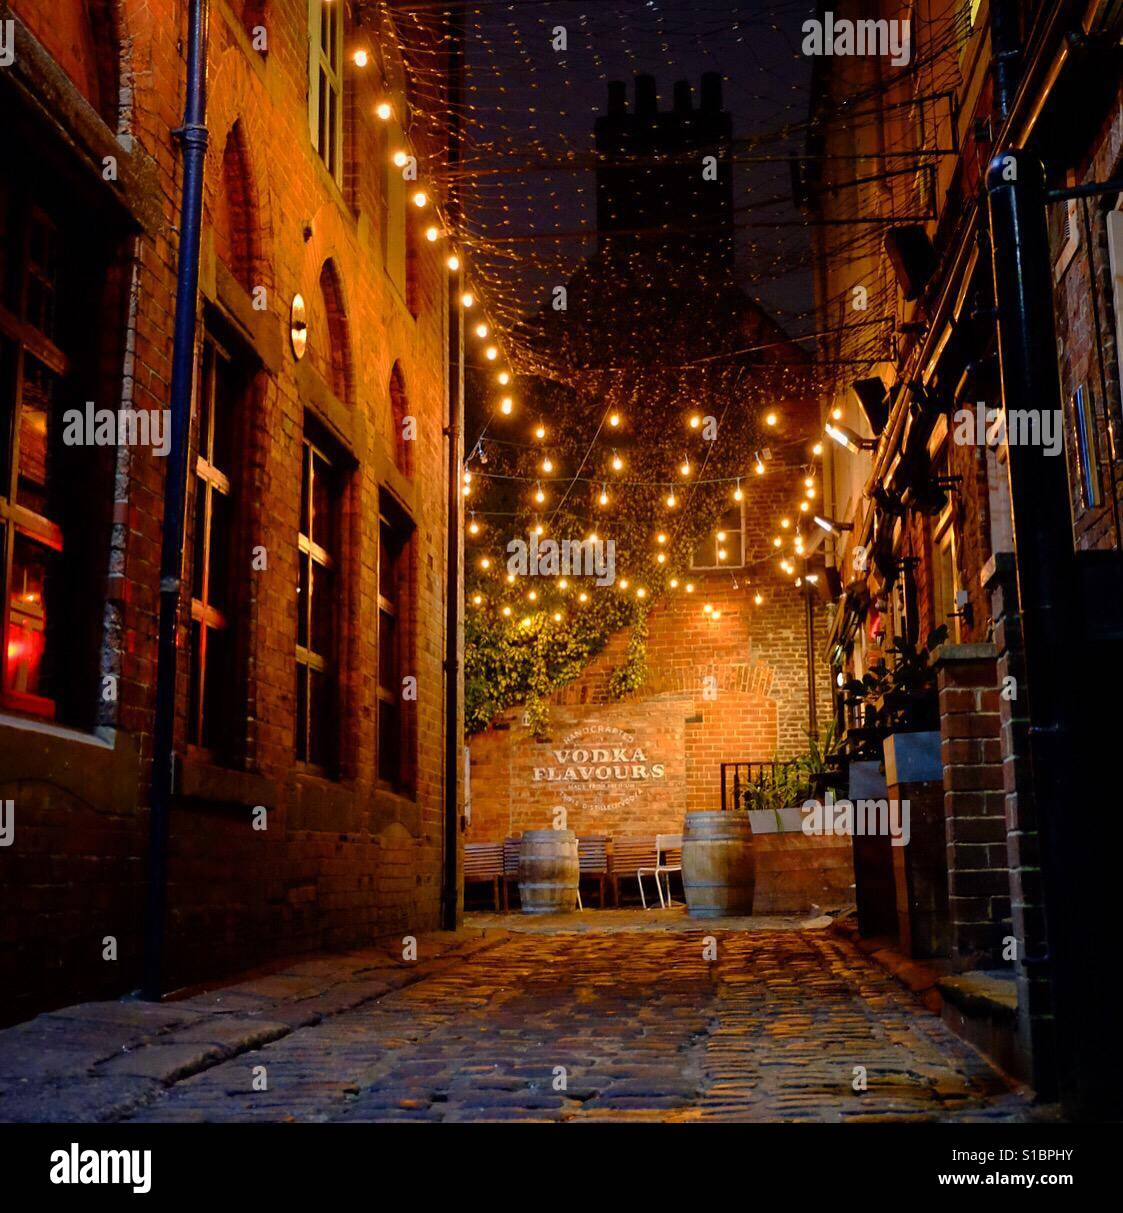 Entrance to Queens Court in Leeds, West Yorkshire. - Stock Image